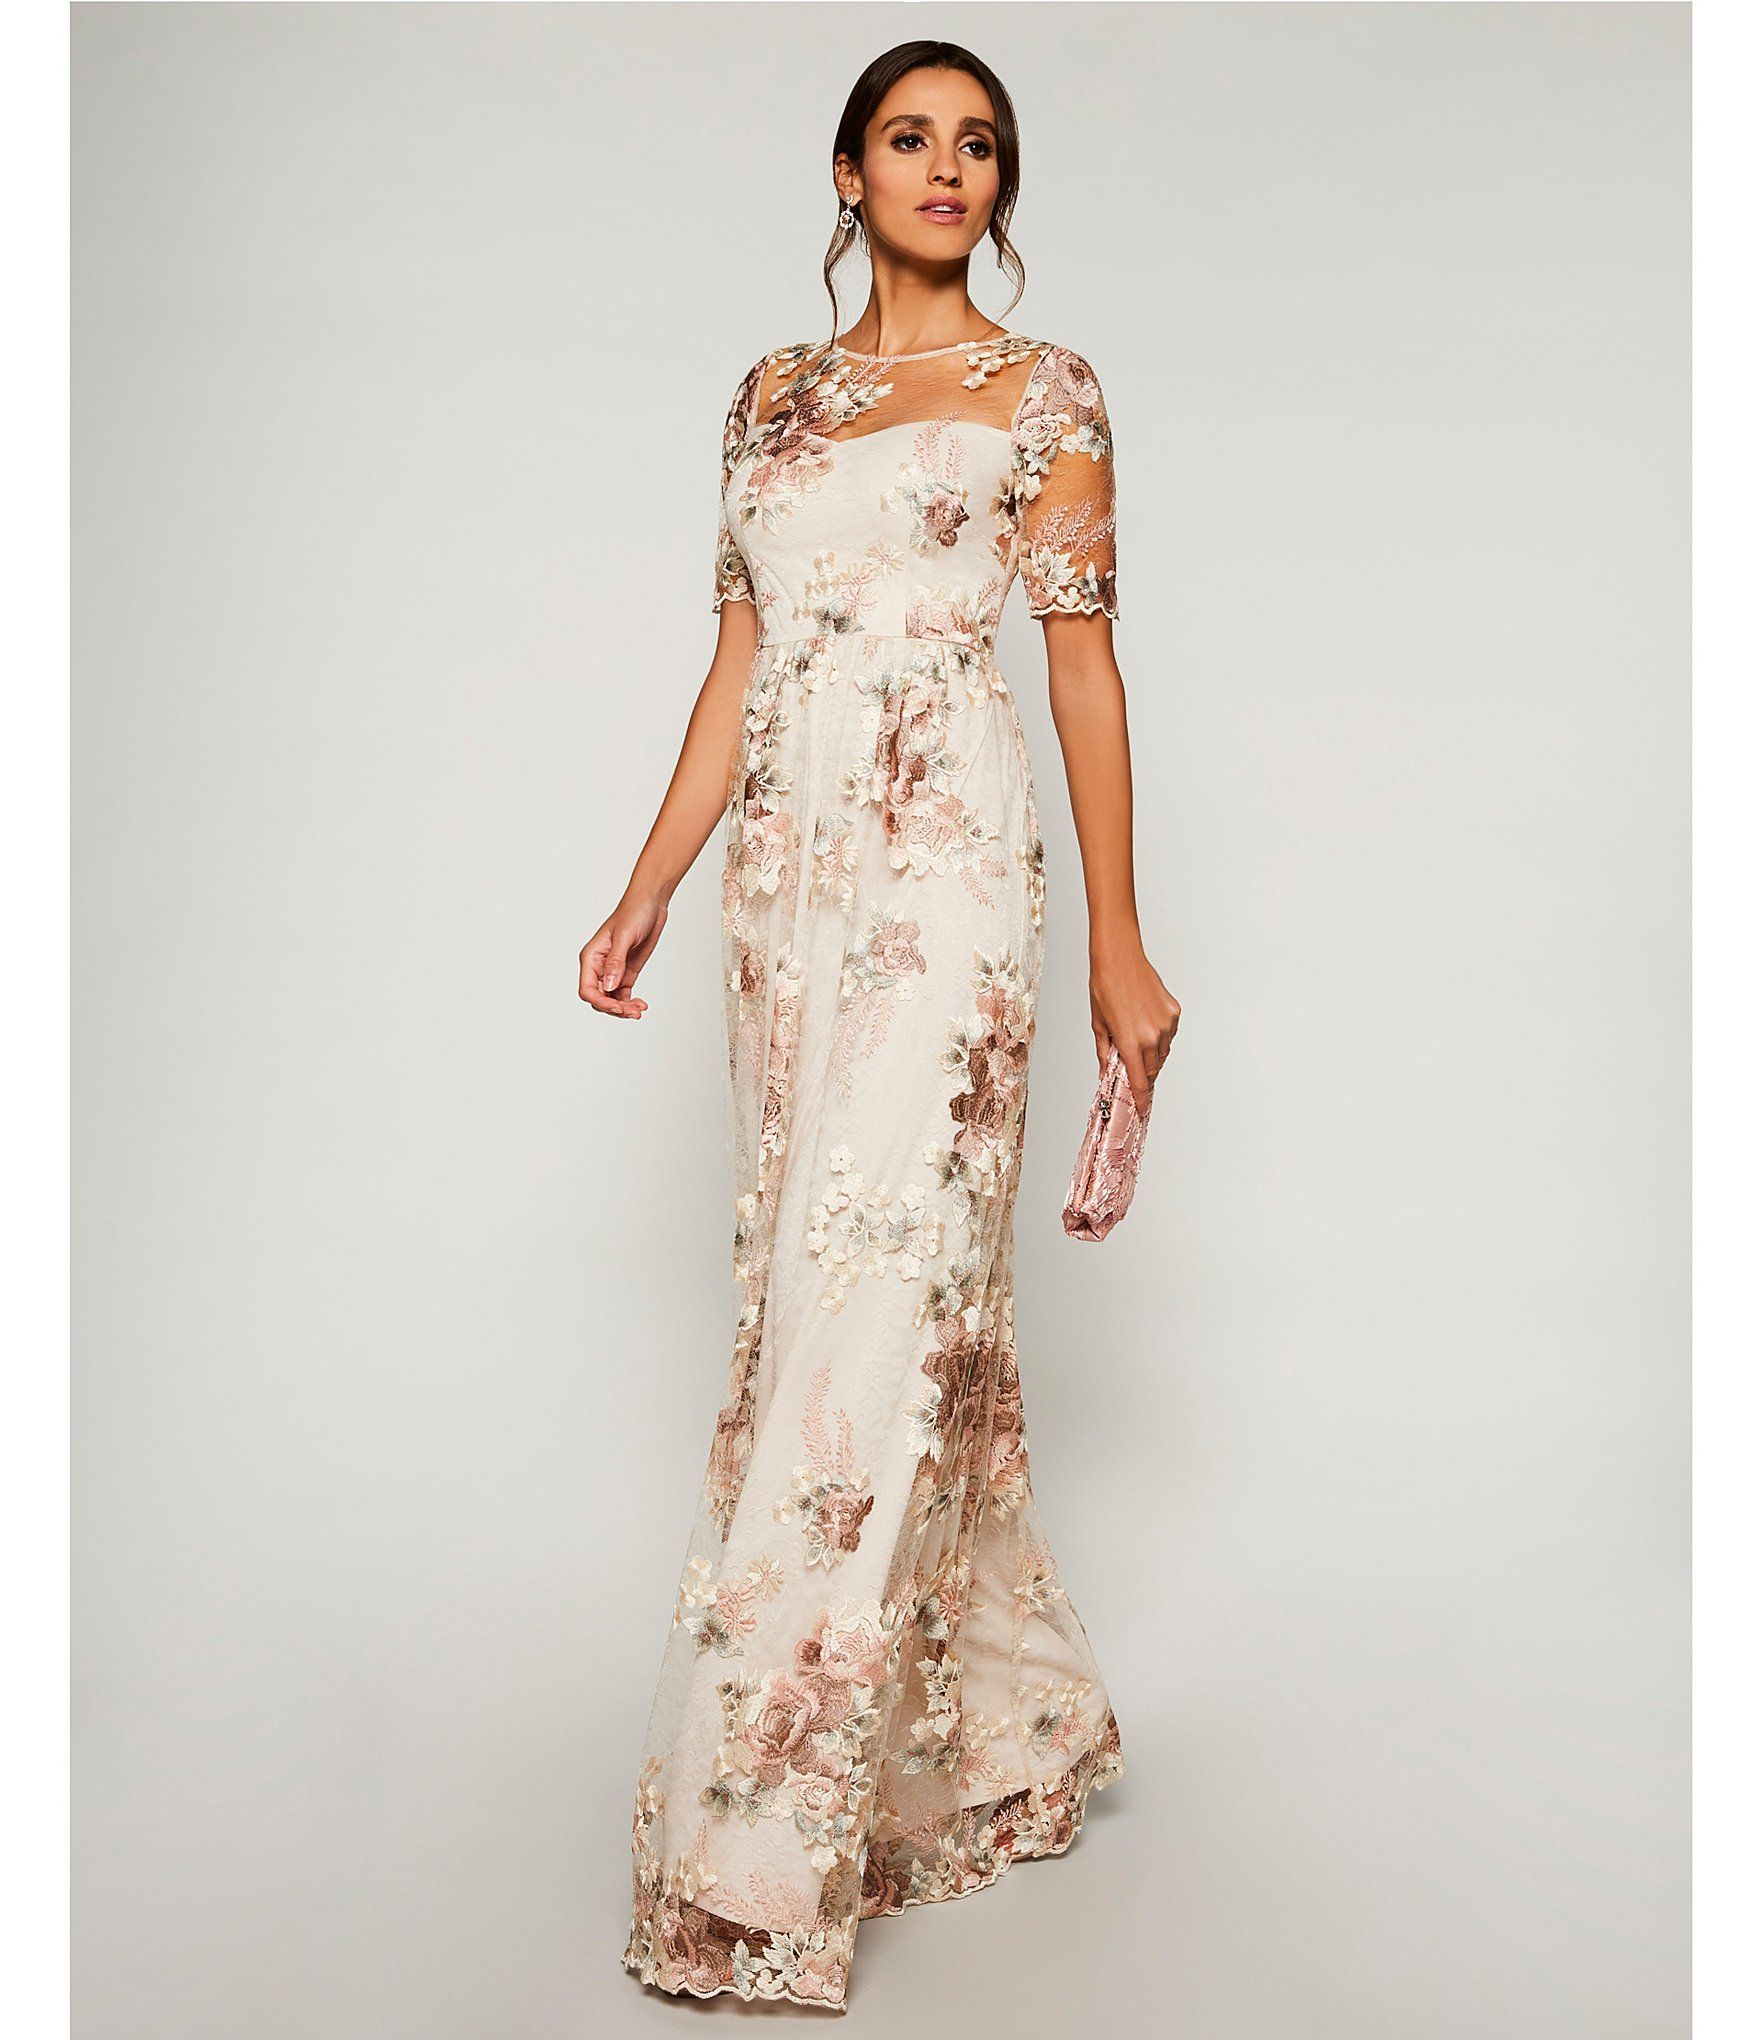 Adrianna Papell Floral Embroidered Long Gown Dillards Mother Of Groom Dresses Mother Of Bride Outfits Mom Wedding Dress